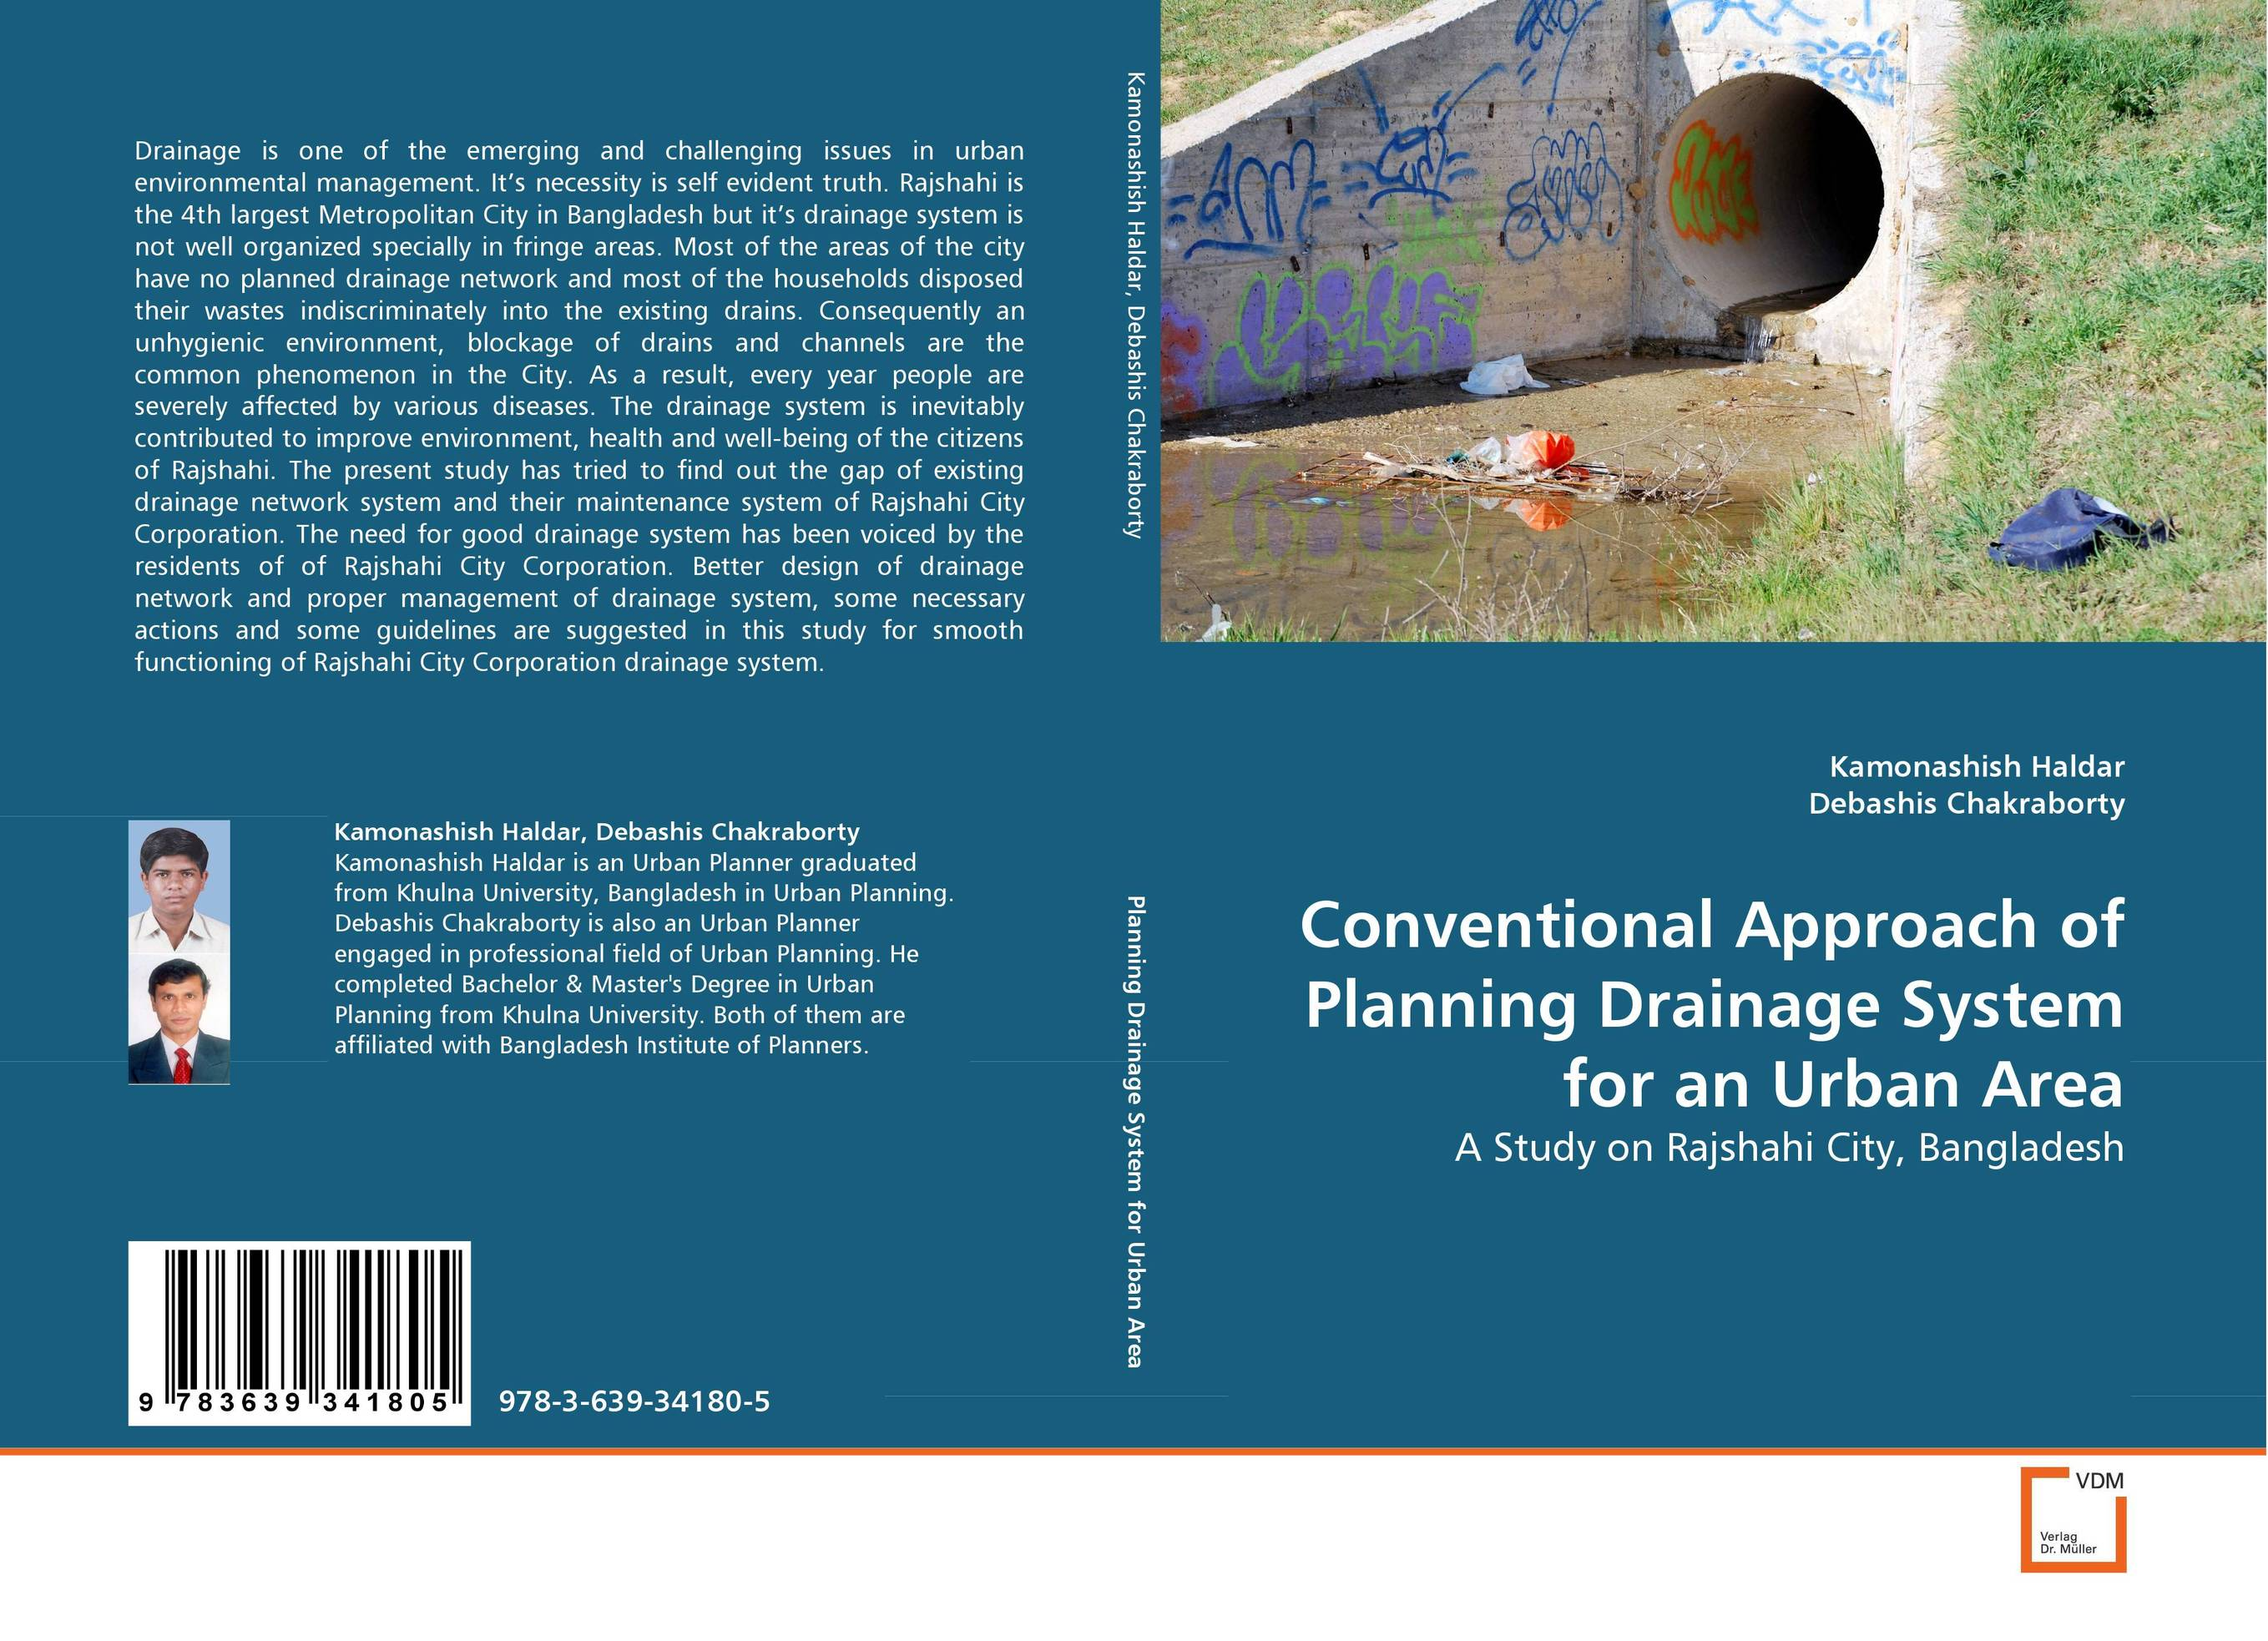 Conventional Approach of Planning Drainage System for an Urban Area design and implement network management system